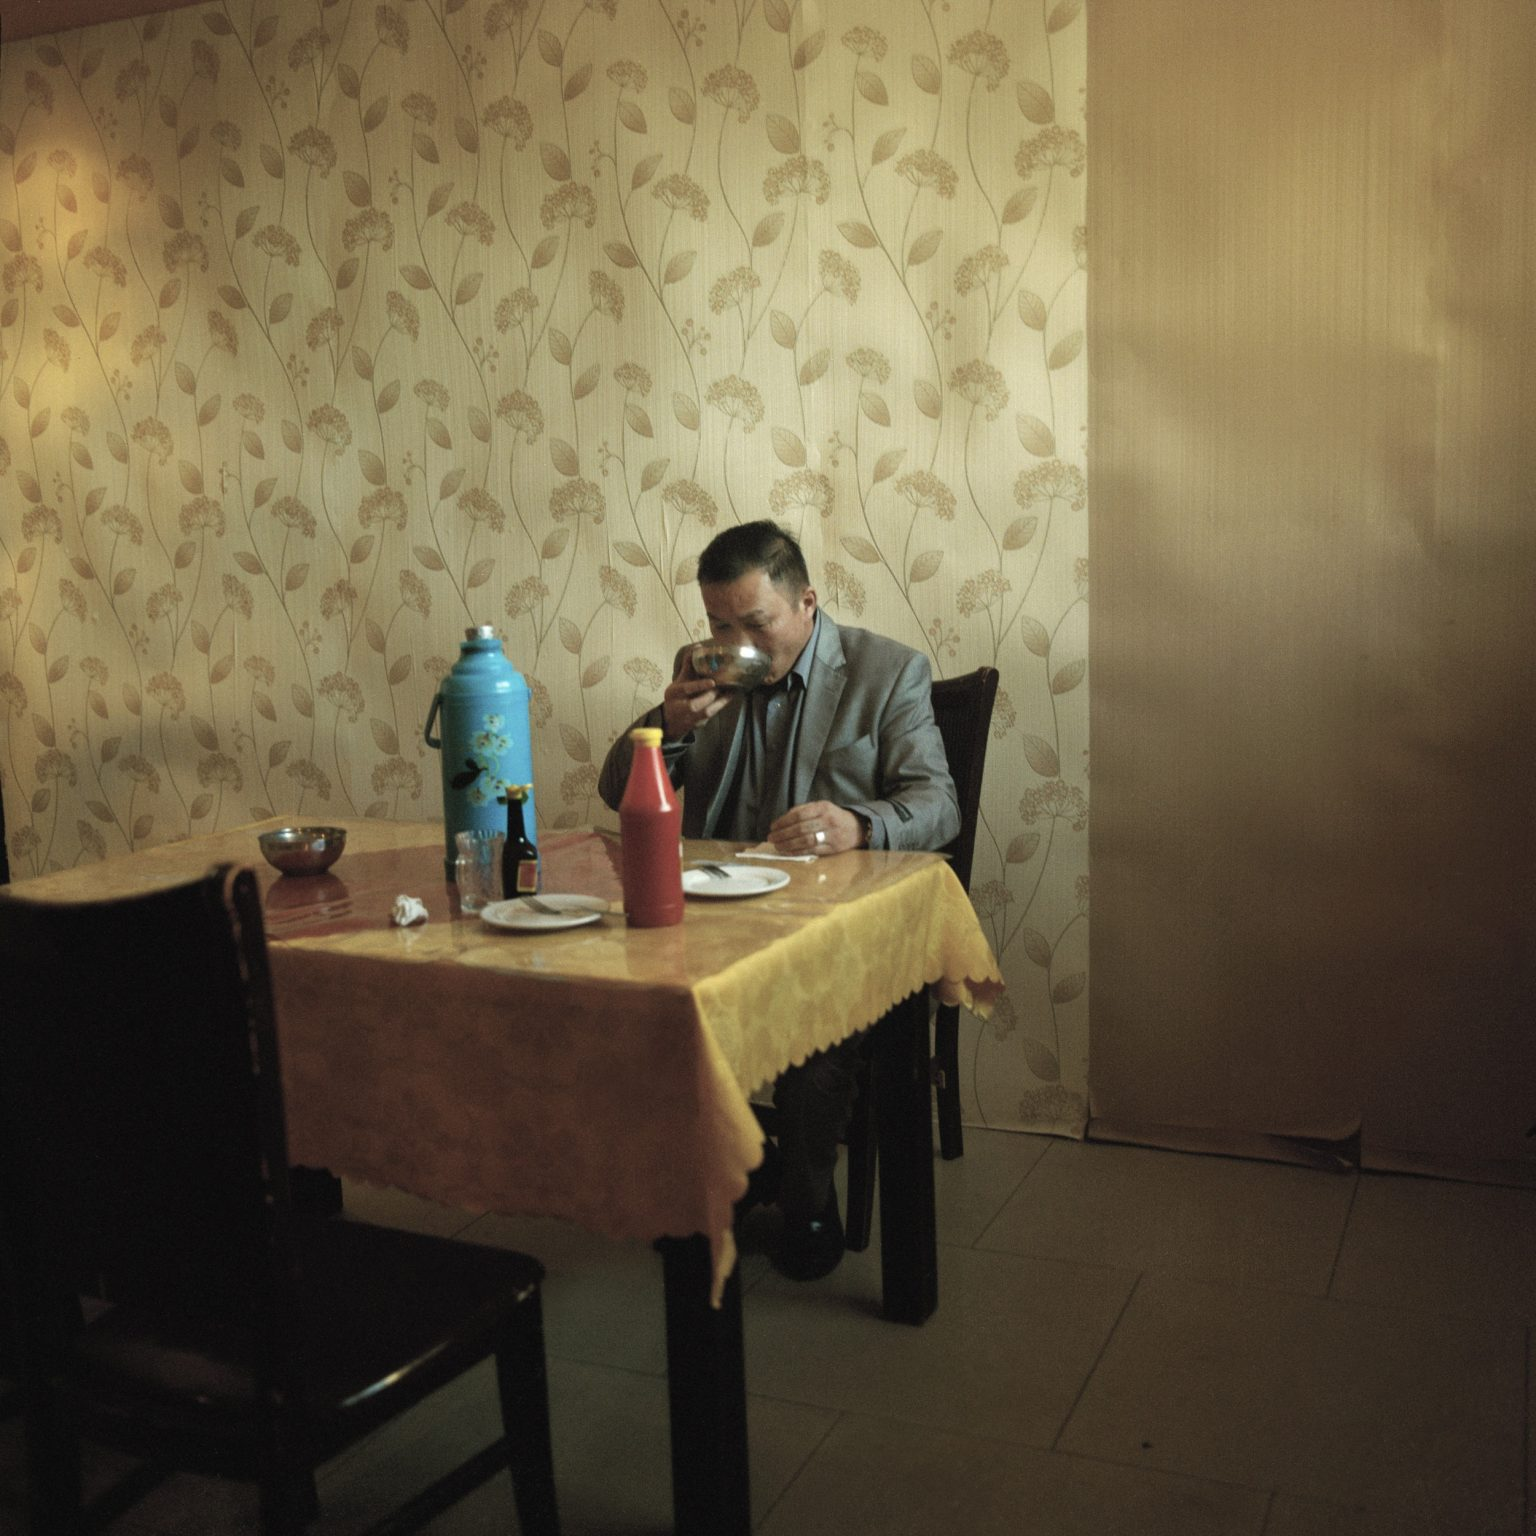 A police detective having his meal in the Police department canteen. Police often have to face with domestic violence issues almost always linked to alcohol abuse. Dalanzadgad, 2013